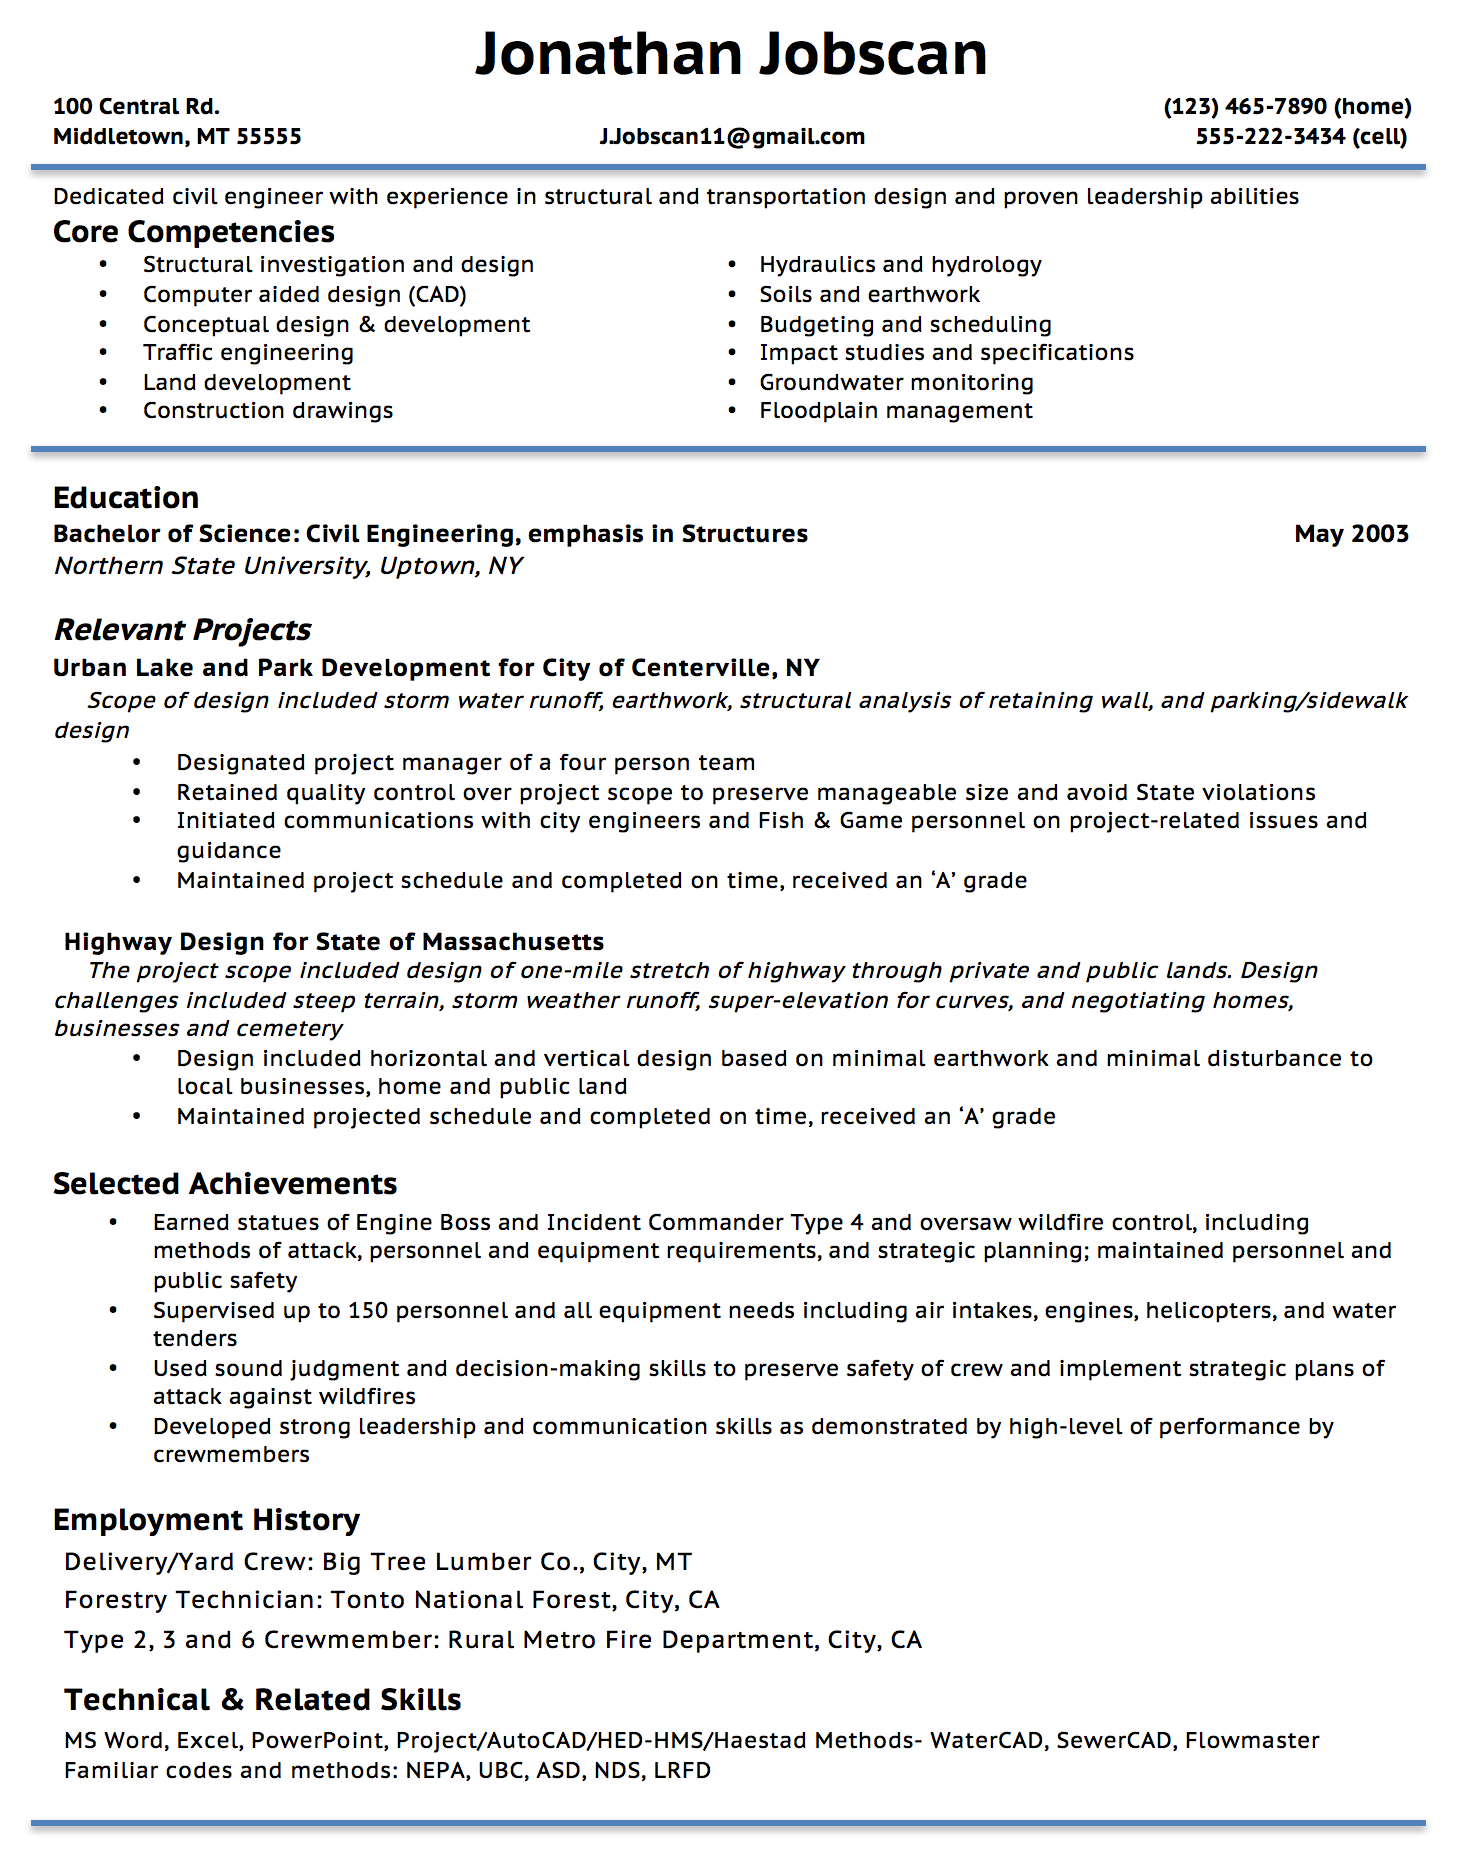 Opposenewapstandardsus  Pleasing Resume Writing Guide  Jobscan With Inspiring Example Of A Functional Resume Format With Adorable List Of Hard Skills For Resume Also Lpn Job Description For Resume In Addition How To Type A Resume On Word And Call Center Resume Objective As Well As Landman Resume Additionally Senior Accountant Resume Examples From Jobscanco With Opposenewapstandardsus  Inspiring Resume Writing Guide  Jobscan With Adorable Example Of A Functional Resume Format And Pleasing List Of Hard Skills For Resume Also Lpn Job Description For Resume In Addition How To Type A Resume On Word From Jobscanco